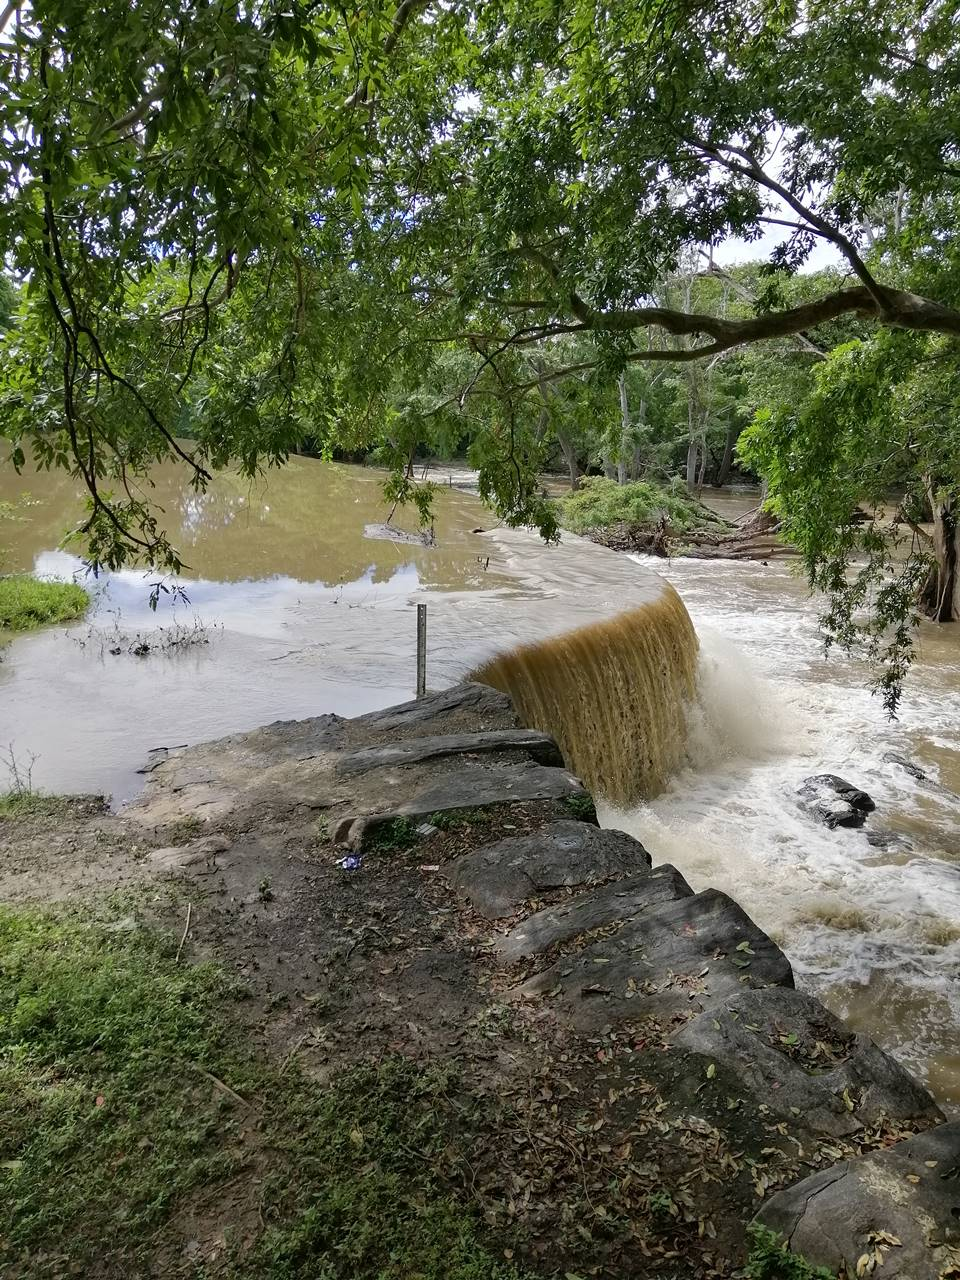 When the water overflows over the Ancient Thekkama Anicut